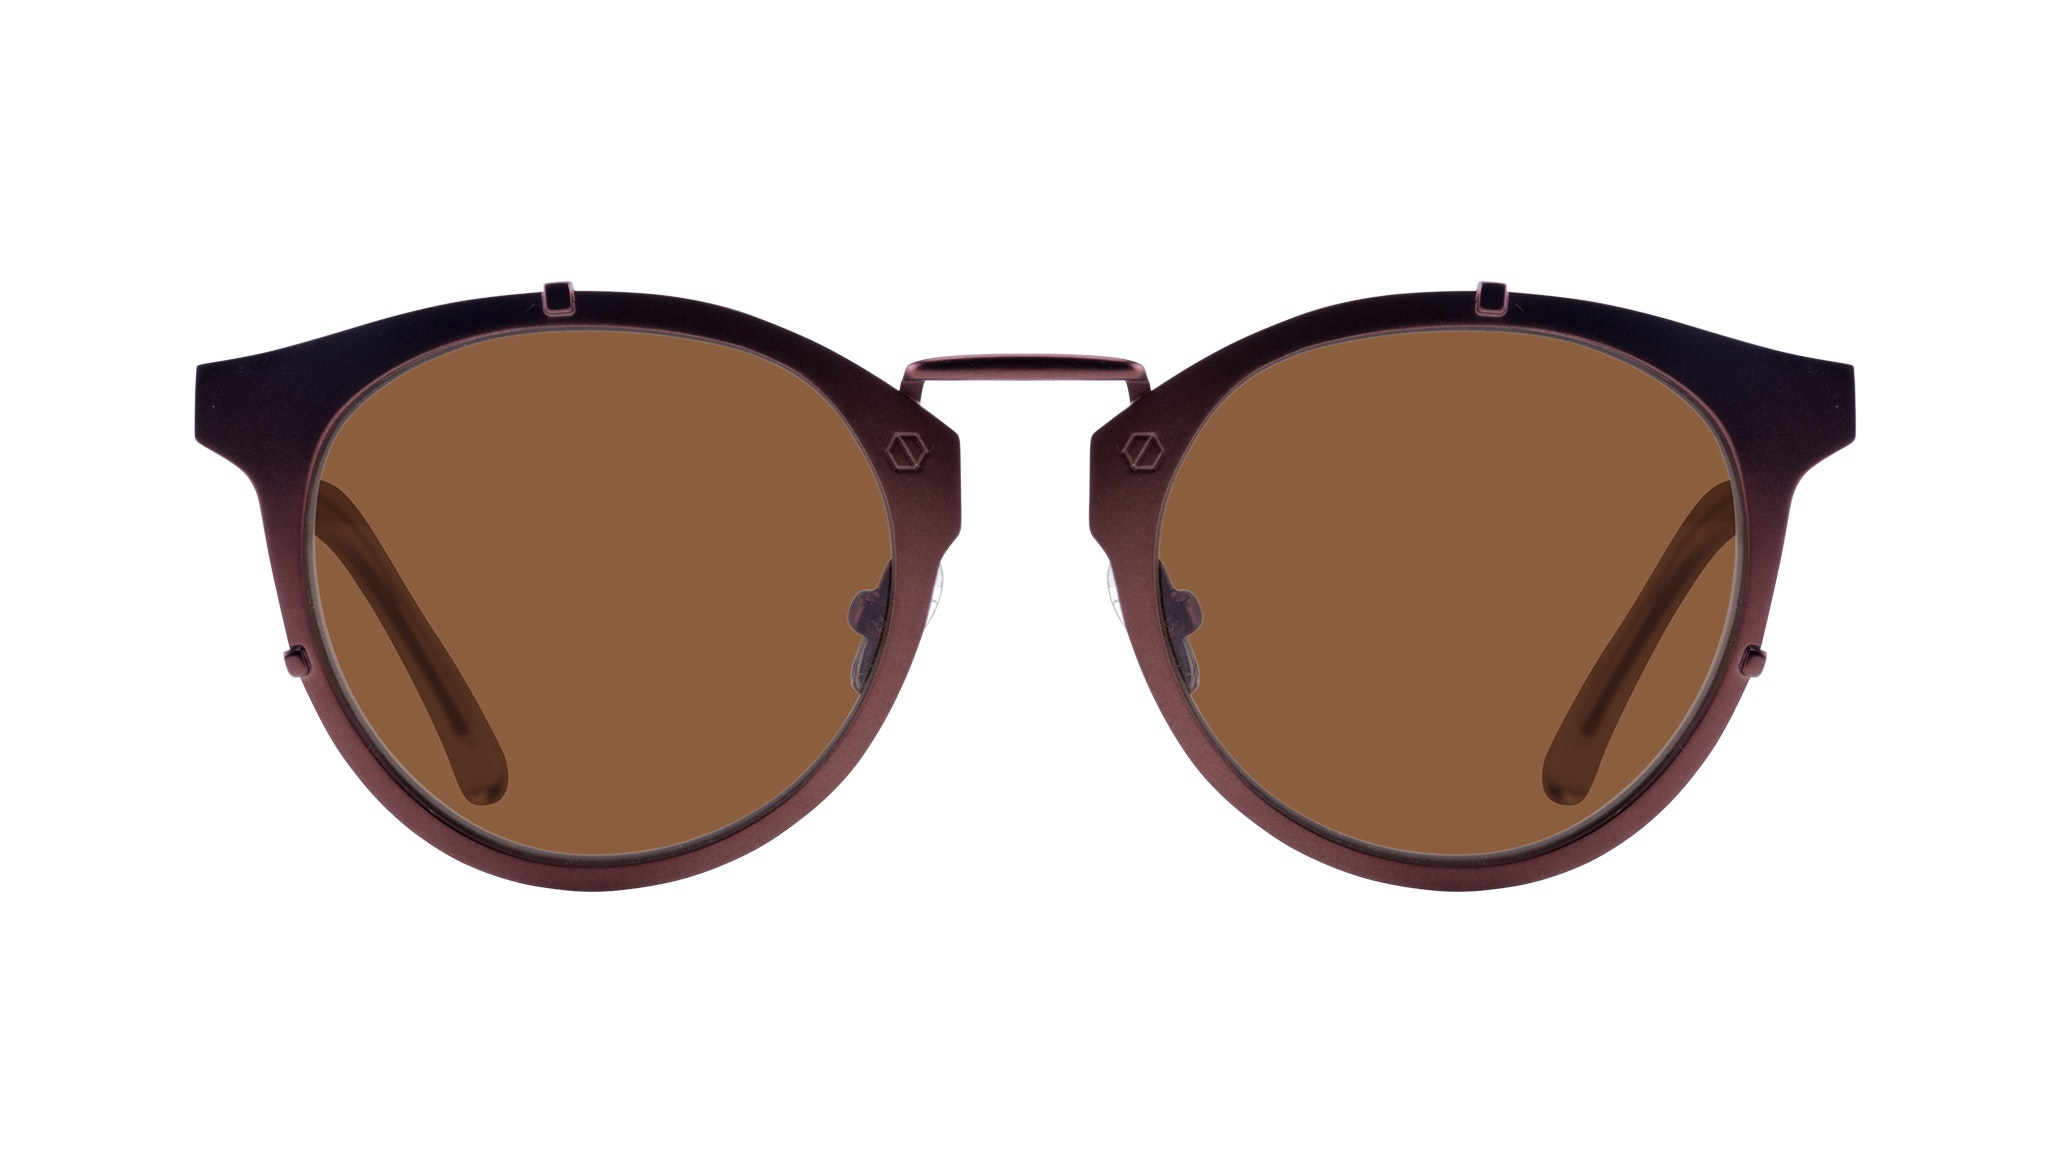 Affordable Fashion Glasses Round Sunglasses Men Way Mud